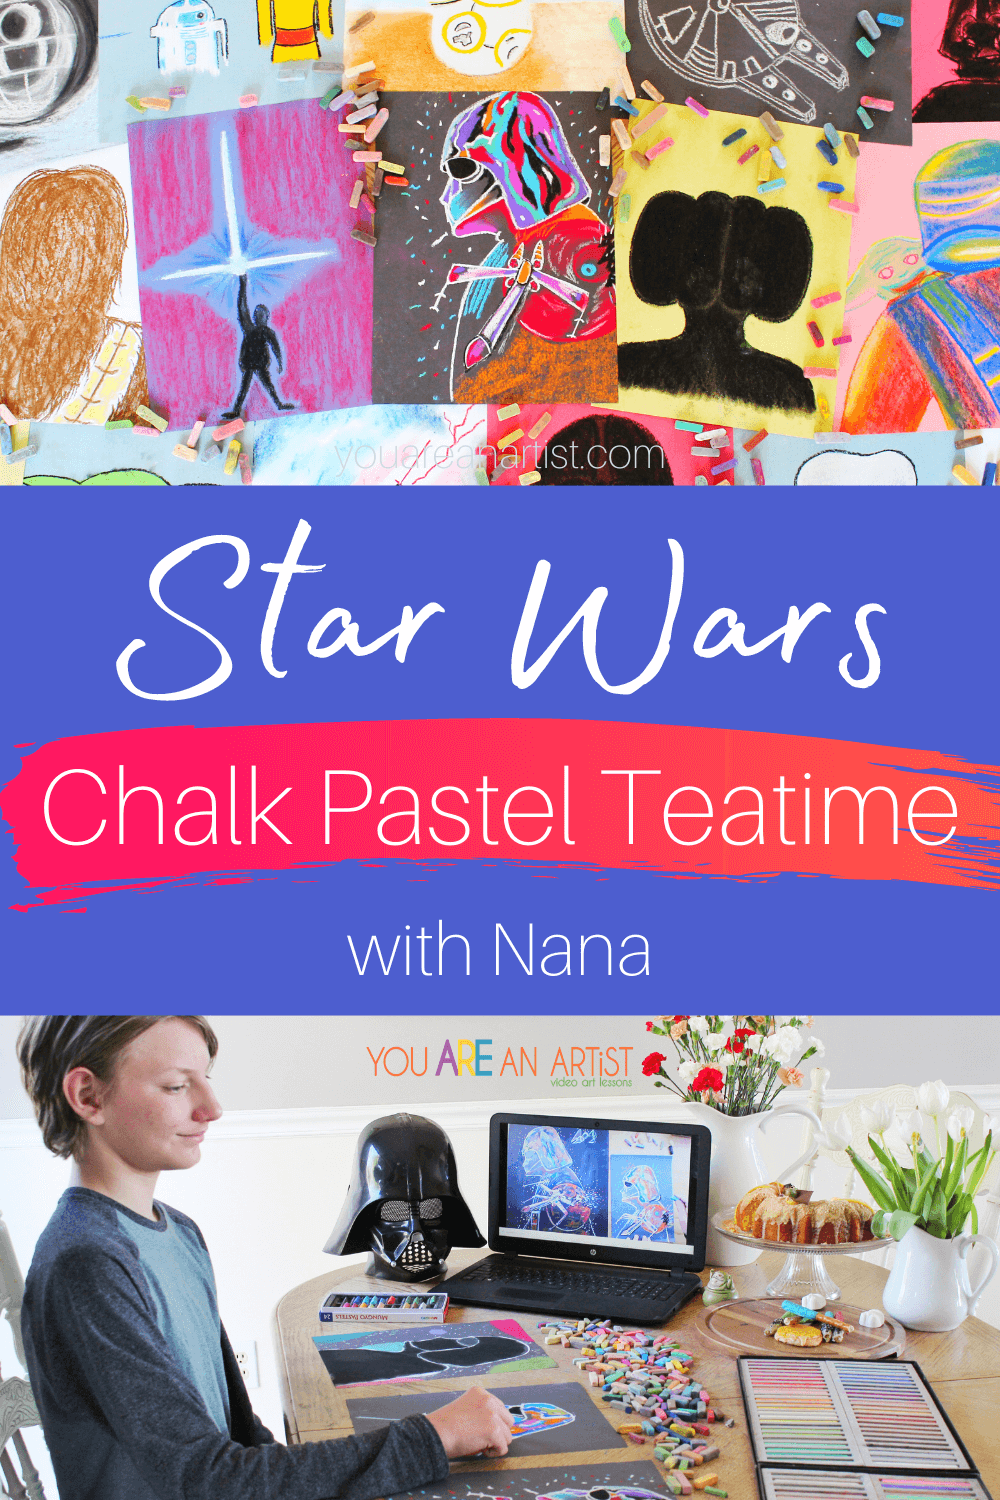 Star Wars Chalk Pastel Teatime with Nana: This fun Star Wars chalk pastel teatime with Nana is the perfect way to celebrate your kiddo's love for all things Star Wars! The Star Wars-themed lessons are super easy to follow and are ideal for all ages. All you need is a simple set of chalk pastels, construction paper, and Nana's video art lessons! Add in some tasty treats, and you have a teatime even a Wookie would love! #Star Wars #Maythe4th #StarWarsartforkids #StarWarschalkpastels #StarWarschalkpastelteatime #StarWarschalkpastellessons #Chalkpastelsatthemovies #YouAReAnArtistClubhouse